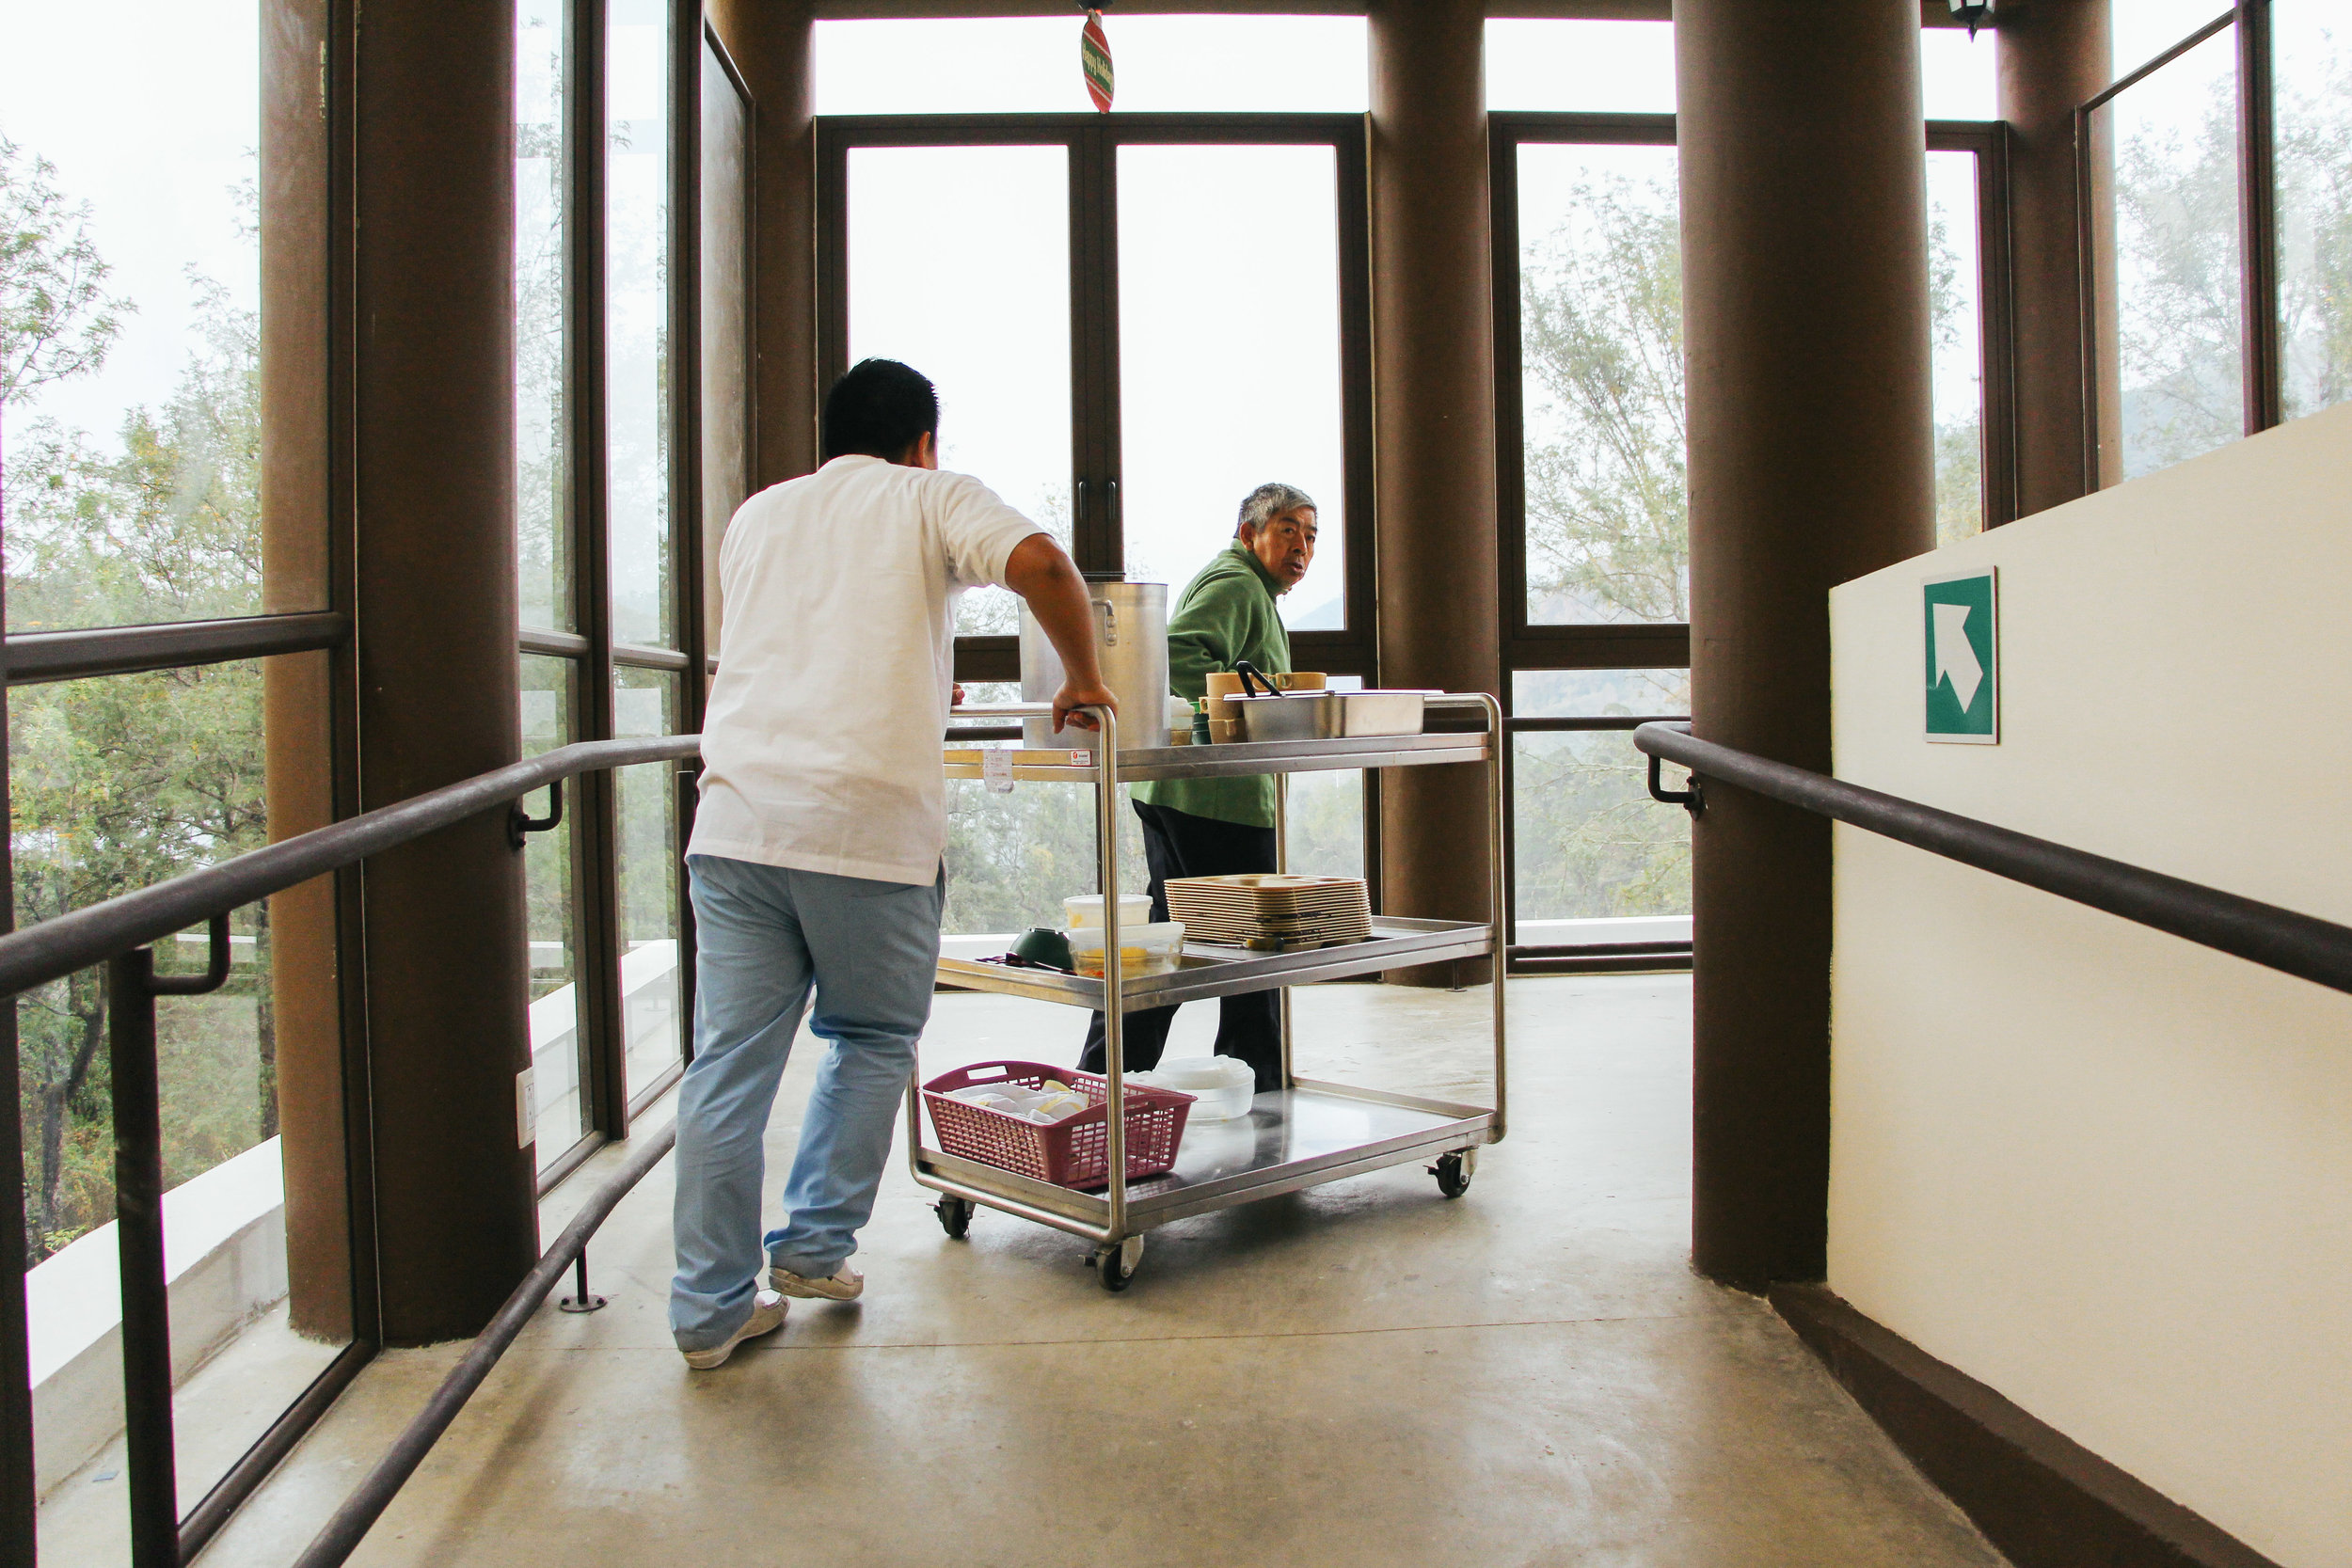 Photo by McKenzie Van Loh CATARINO PEREZ, 63, PULLS A CART OF DISHES FROM THE SECOND FLOOR TO THE KITCHEN AT VIRGEN DEL SOCCORRO JAN. 17. PEREZ OFTEN HELPS THE STAFF AT VIRGEN DEL SOCCORRO MOVE CARTS AND WHEELCHAIRS.